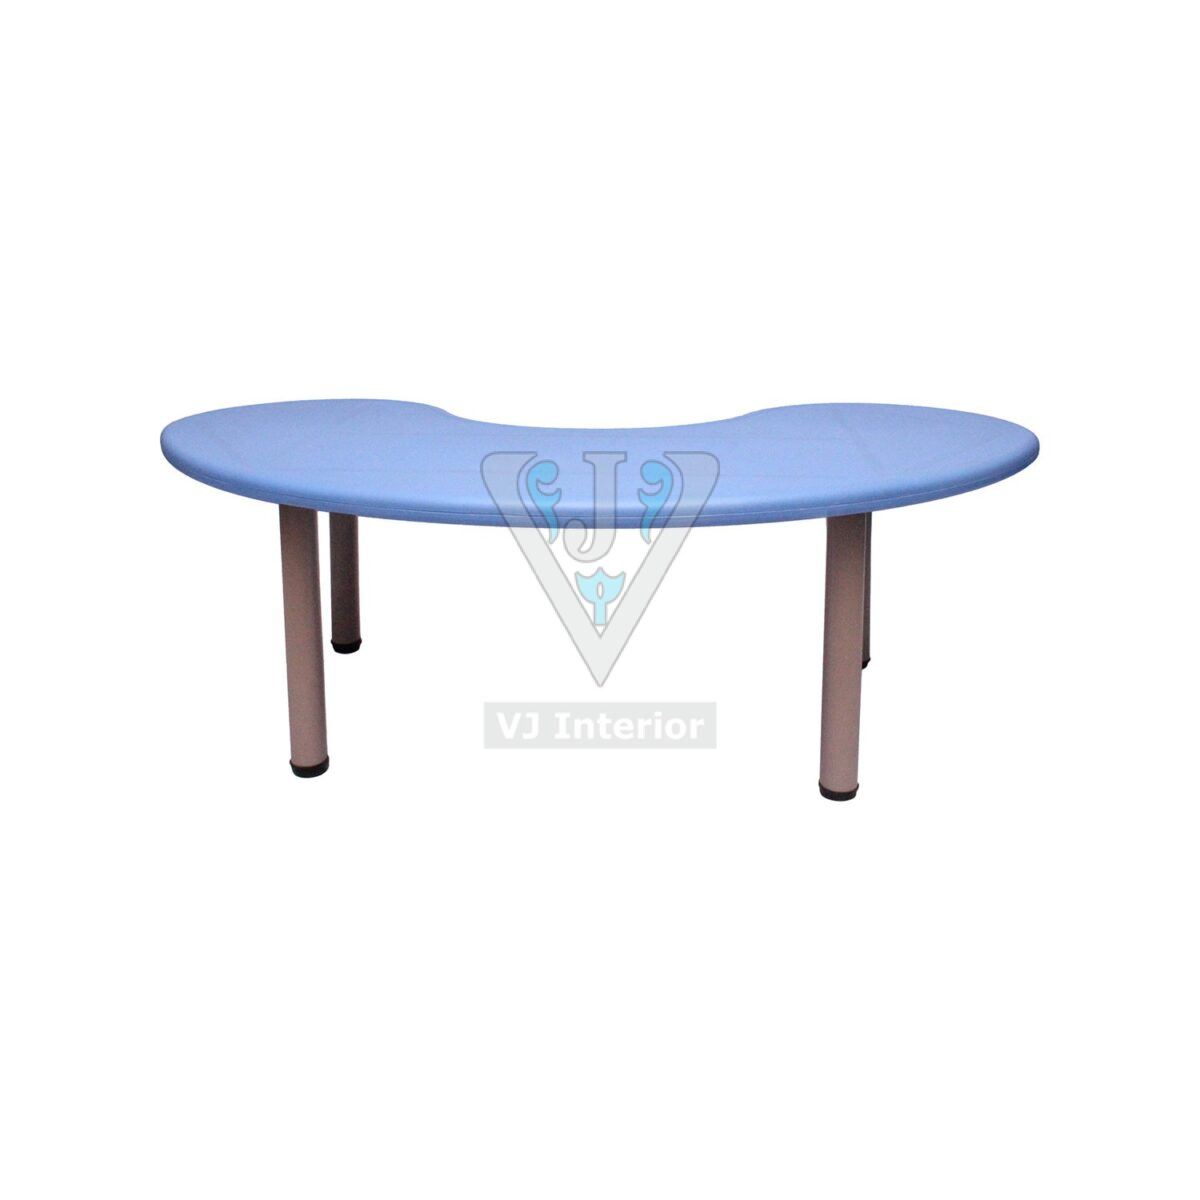 THE BLUE MOON TABLE